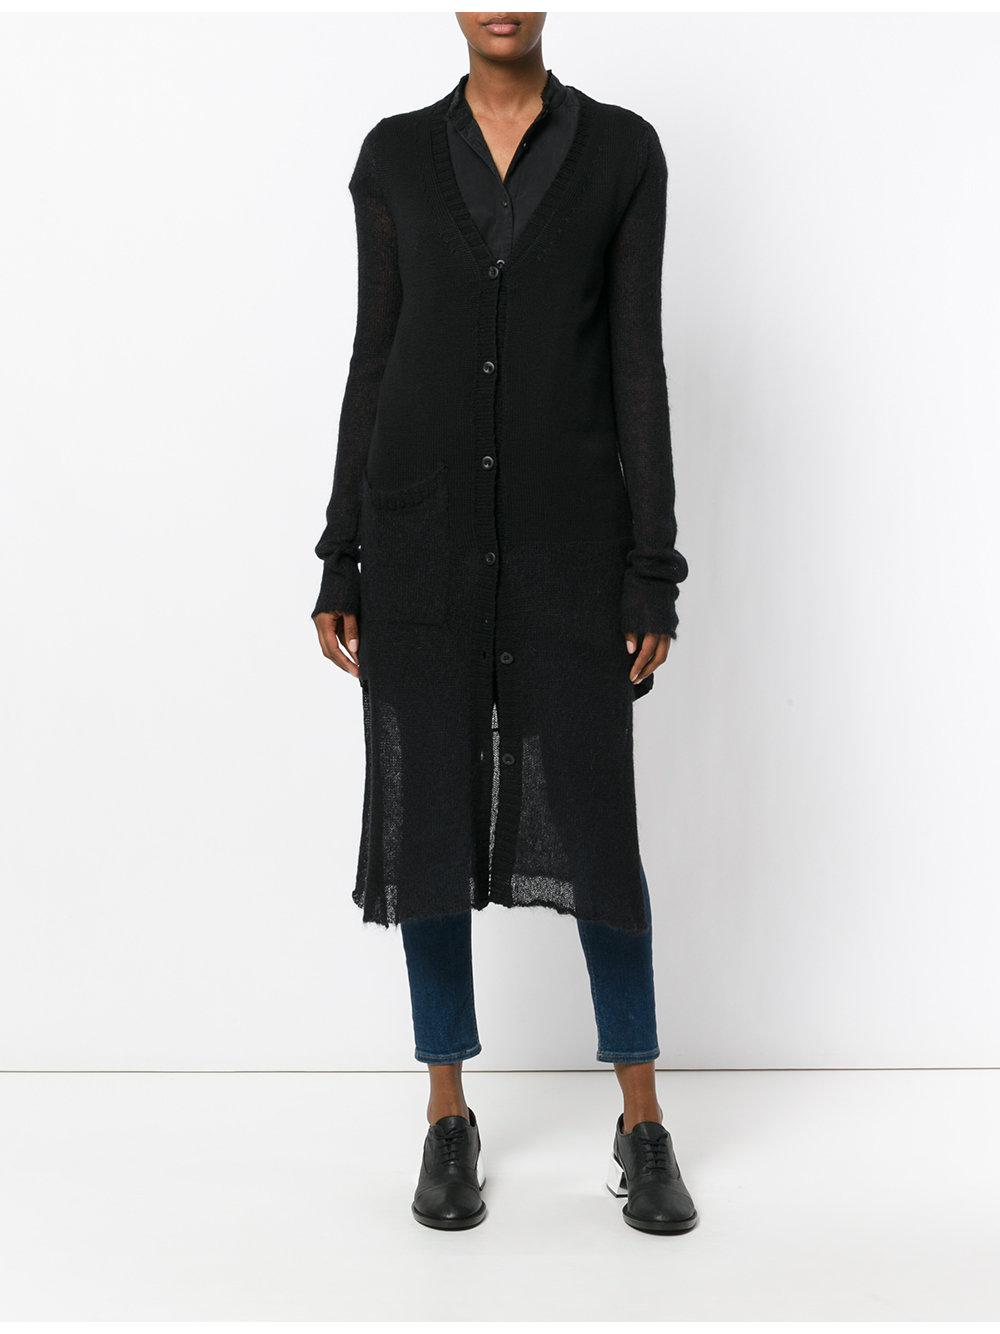 Lost and found rooms Semi-sheer Long Cardigan in Black | Lyst